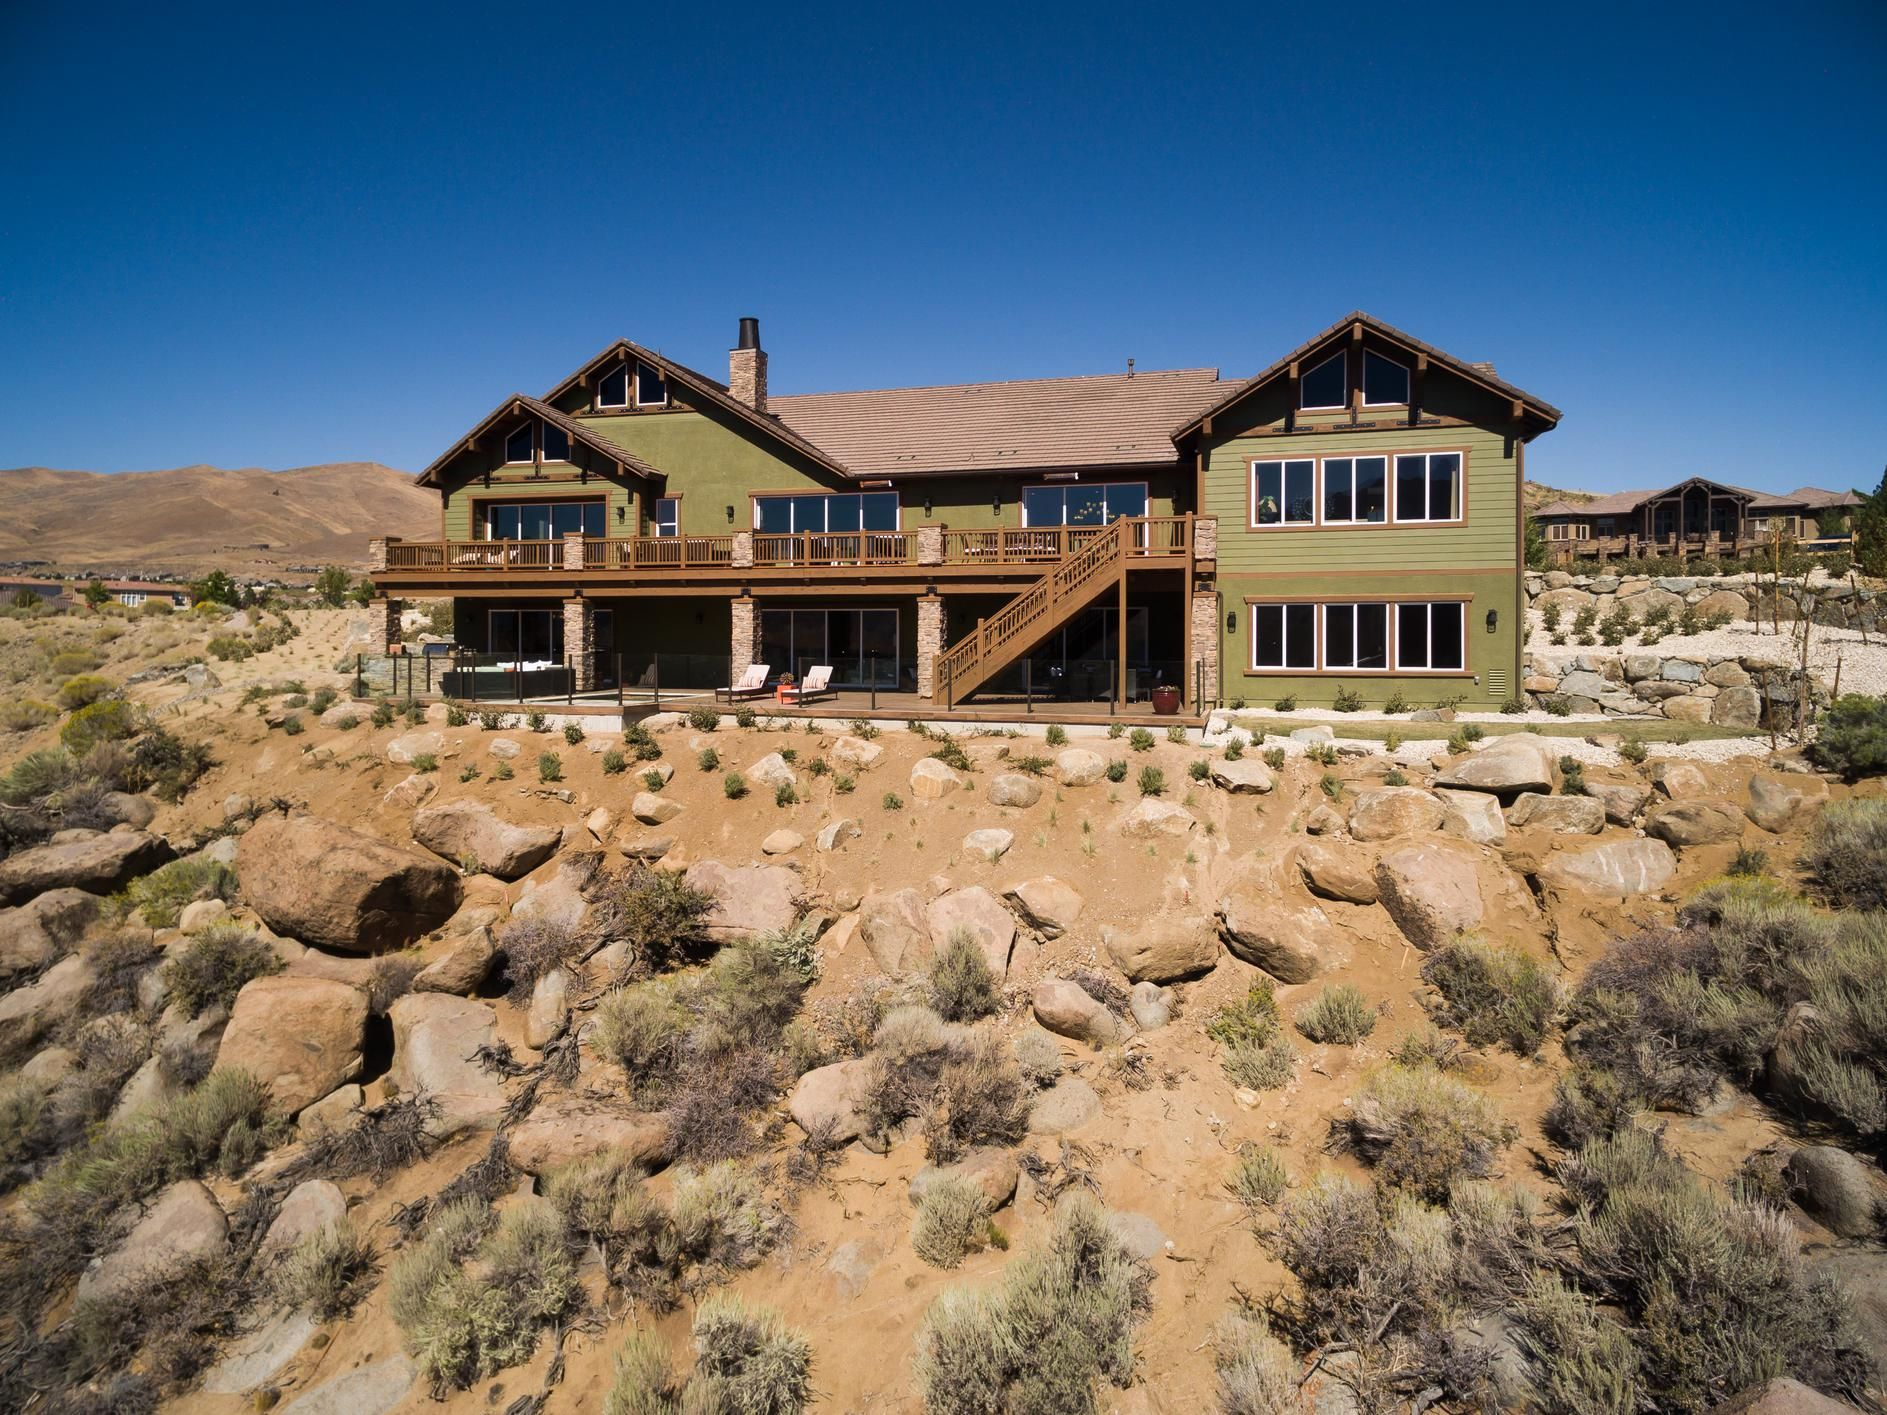 Design A Luxury Home Surrounded By Nature Featuring The Boulders At Somersett Ranier Model Home Located In Reno Nev Model Homes Luxury Homes Home